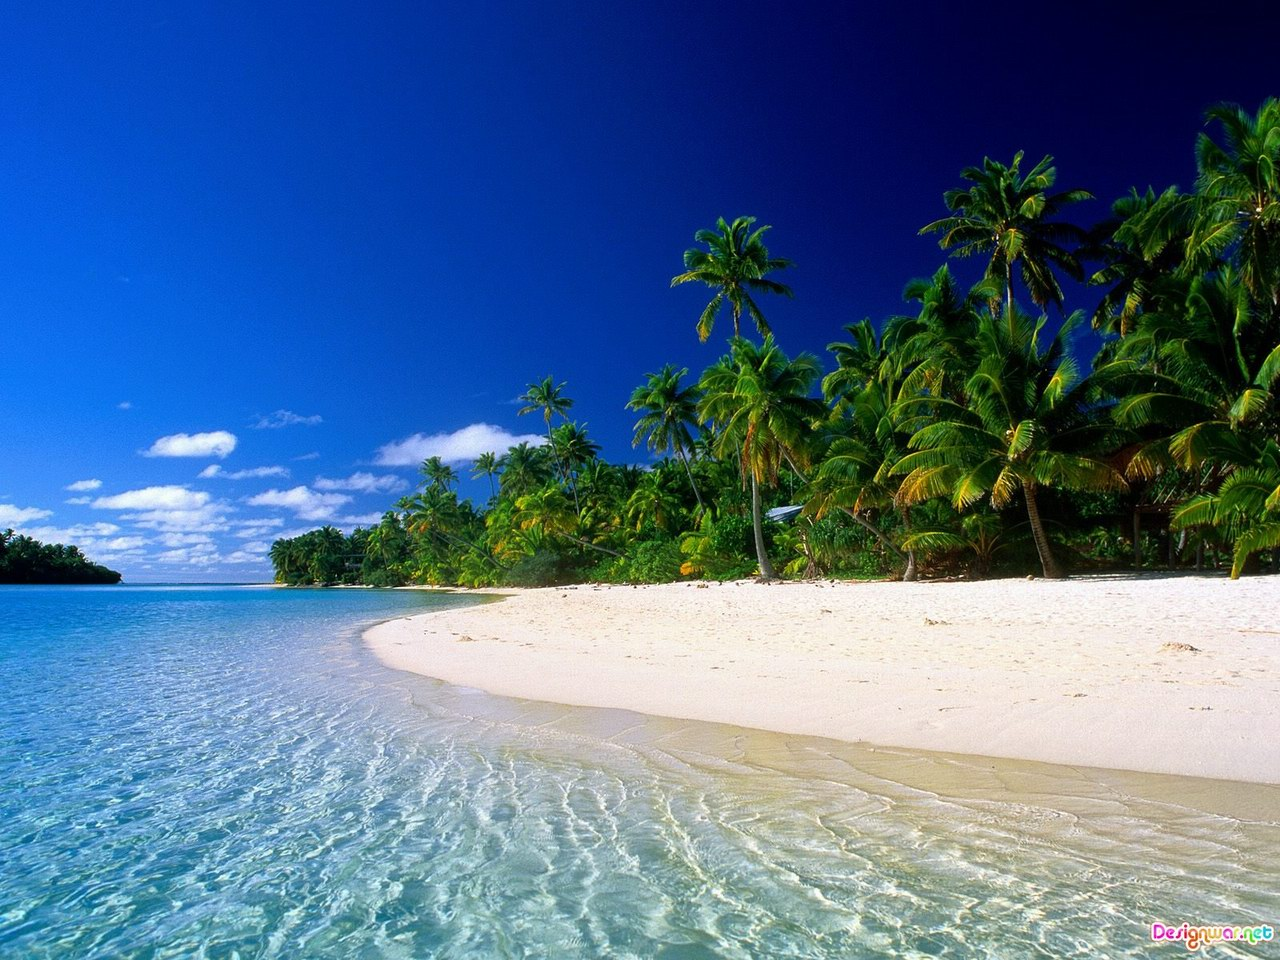 45 Incredible Collection Of Beach Wallpapers   FunPulp 1280x960